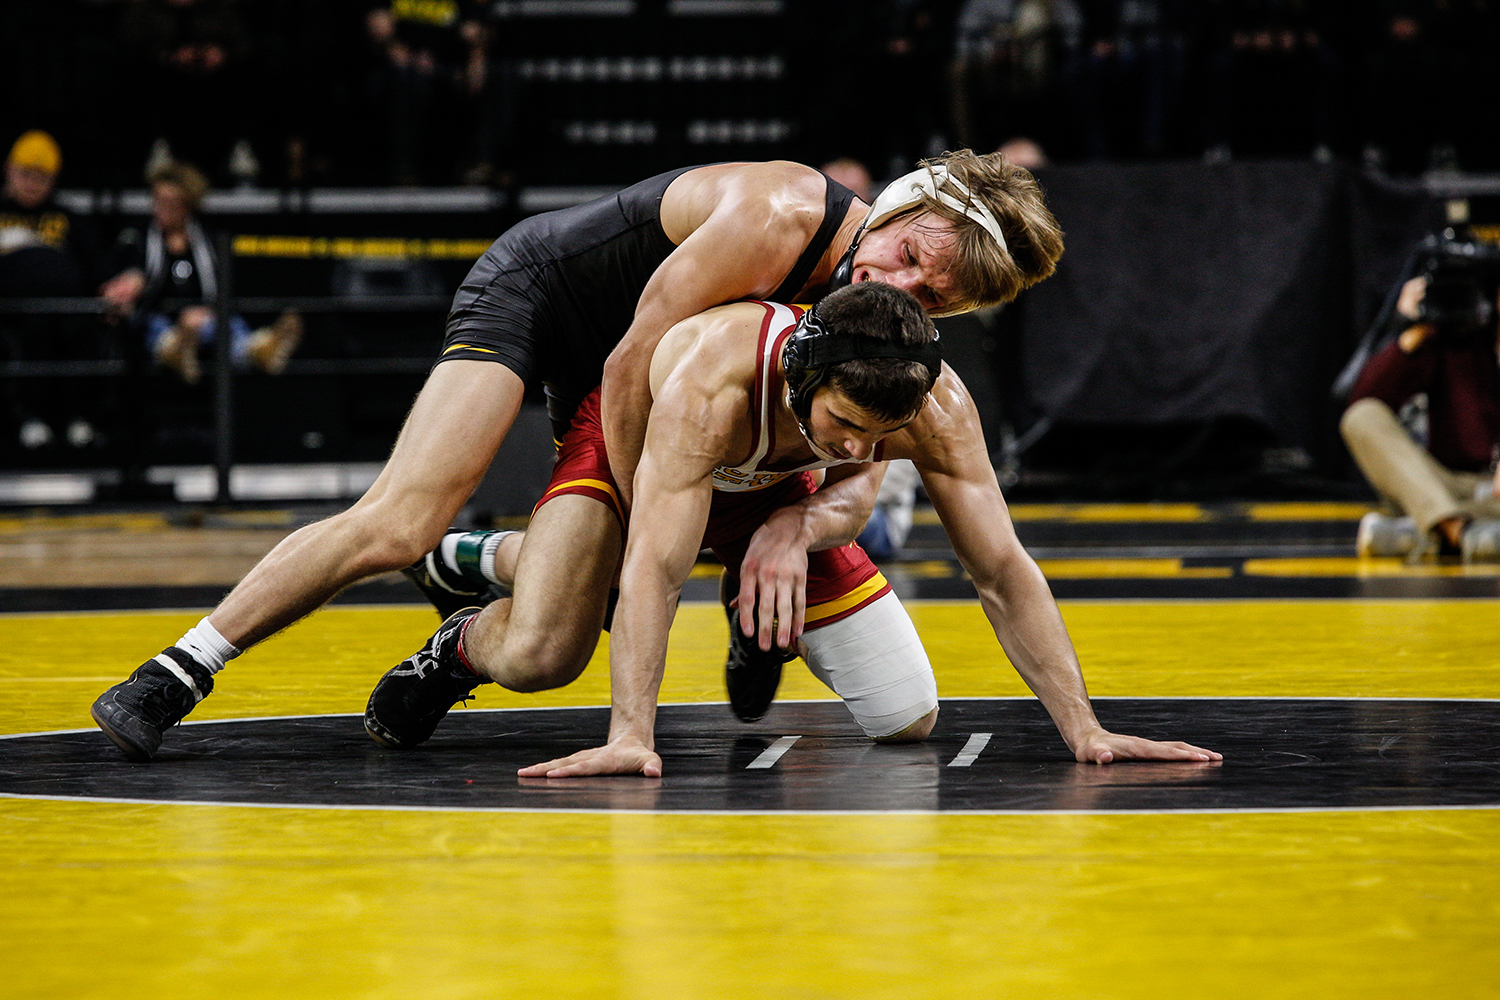 Iowa's Max Murin wrestles Iowa State's Ian Parker during Iowa's dual meet against Iowa State at Carver-Hawkeye Arena in Iowa City on Saturday, December 1, 2018.